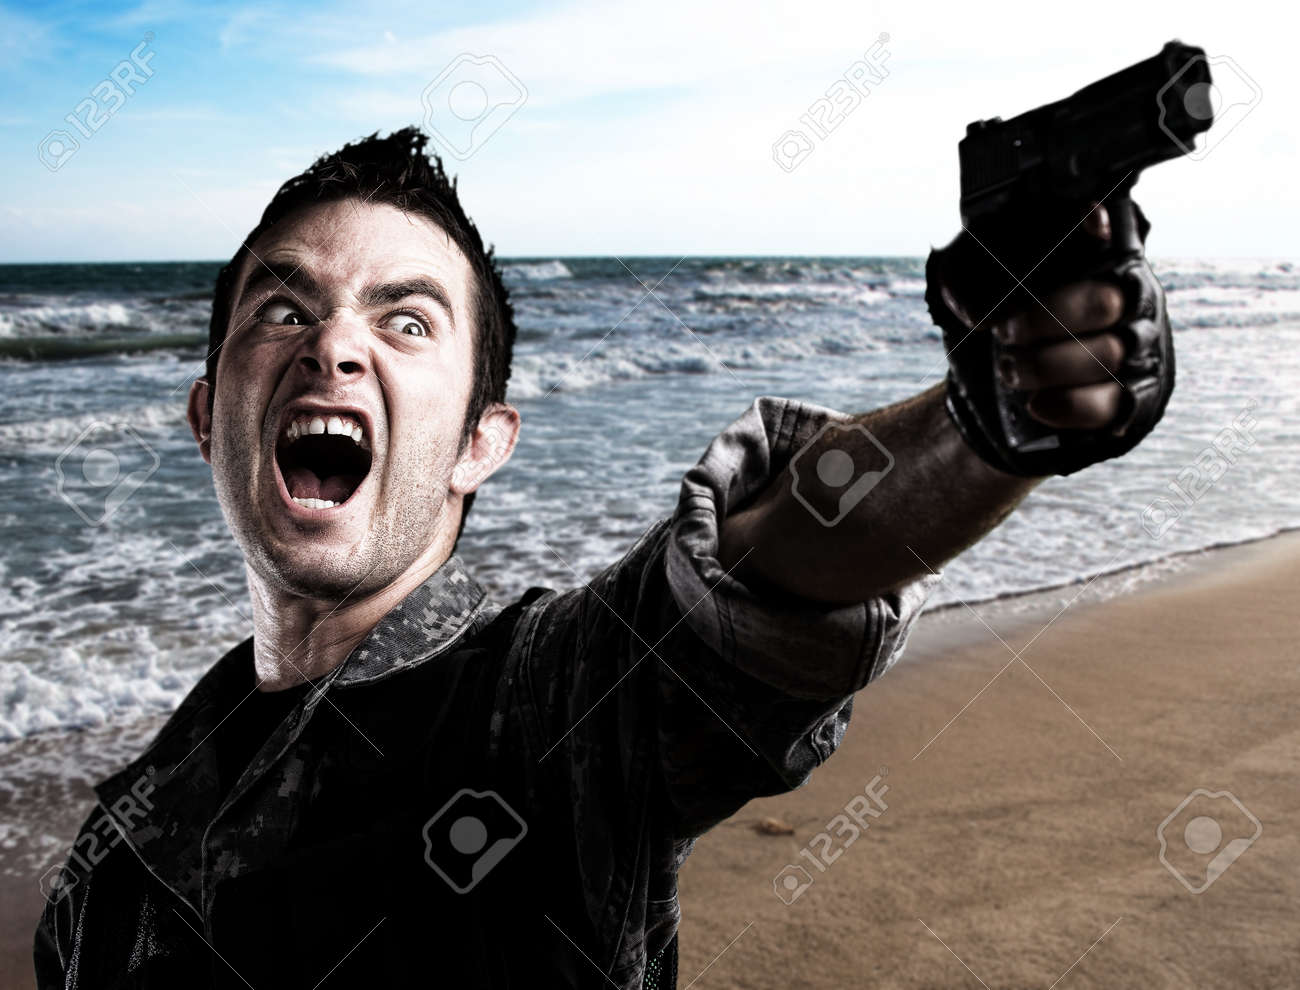 young soldier shotting with gun near the sea shore Stock Photo - 10383786